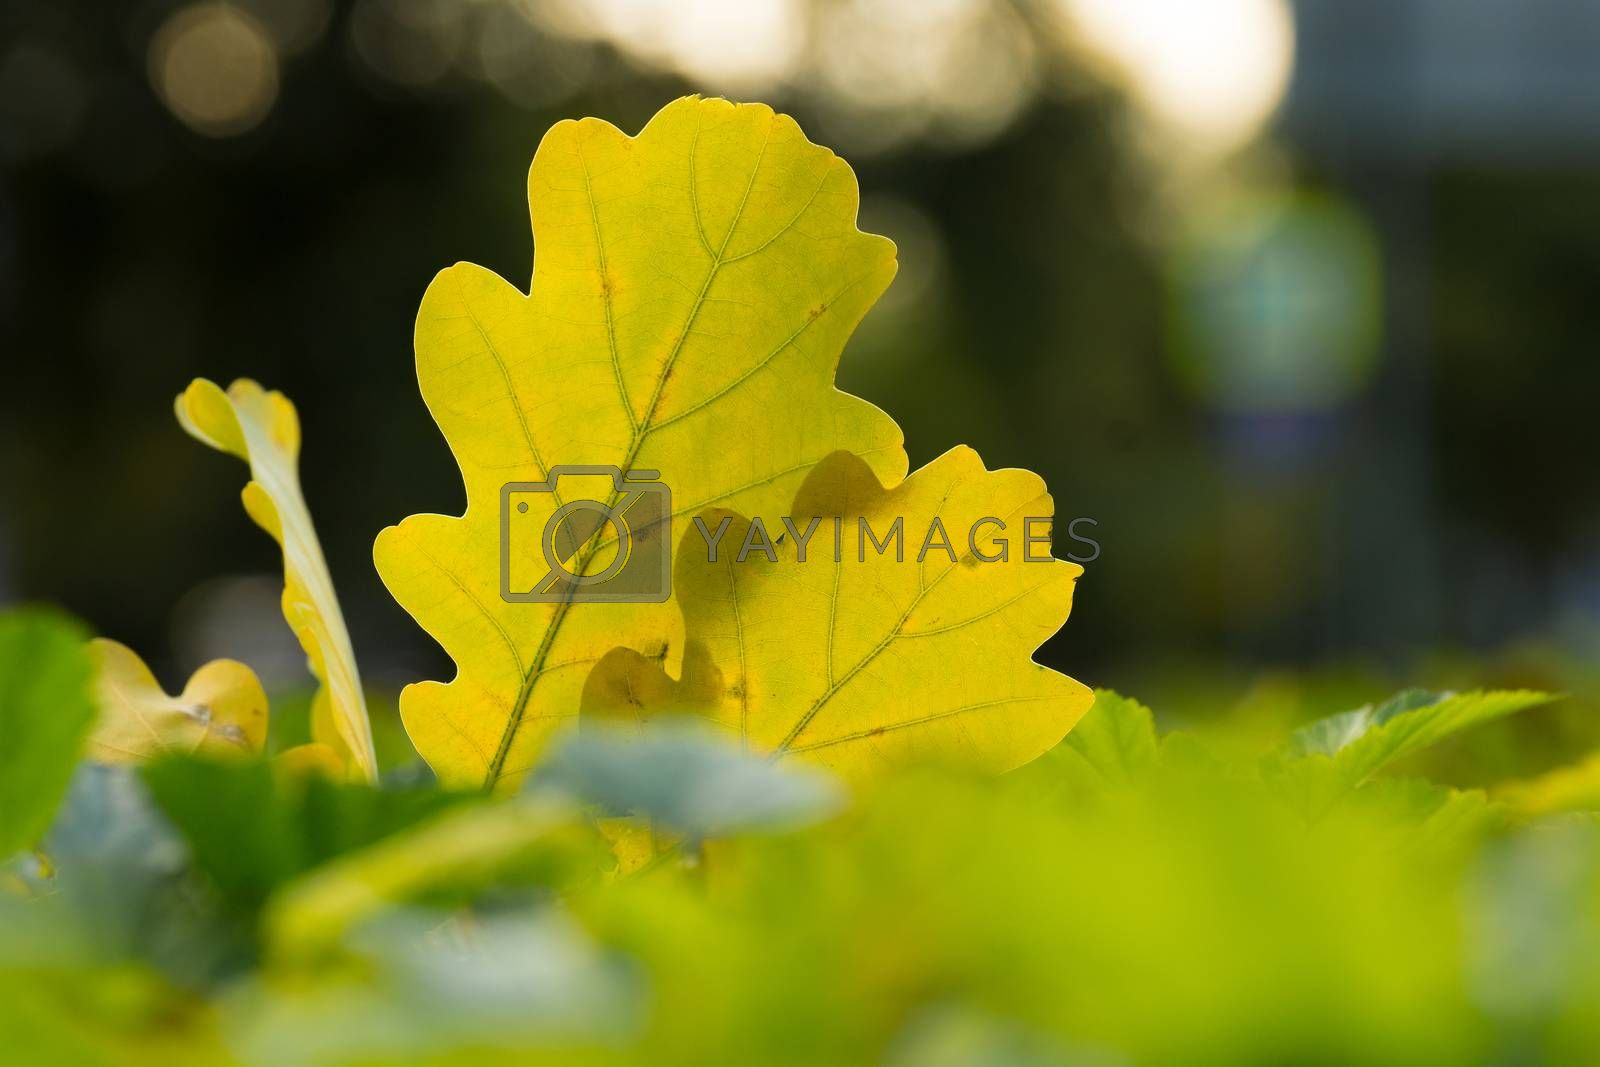 The picture shows the autumn yellow leaves on the bush.